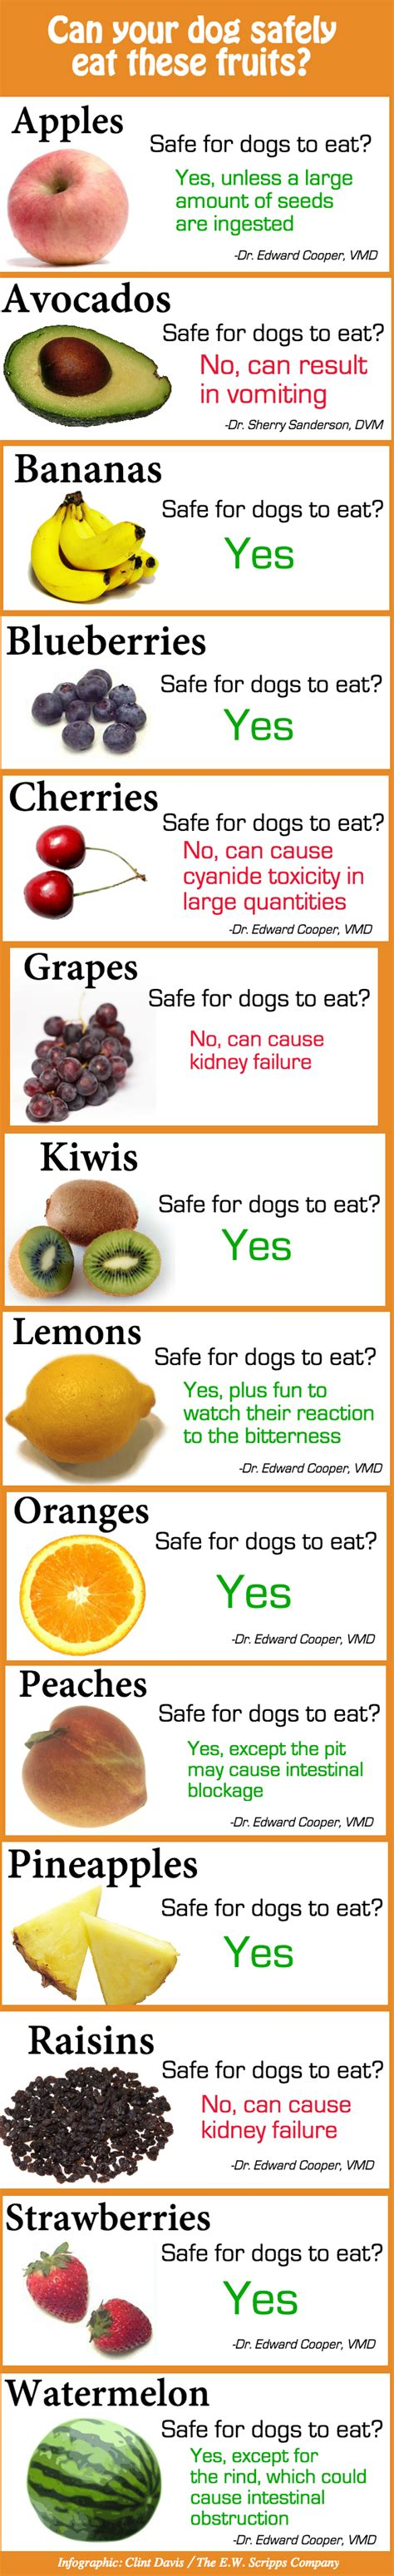 are oranges ok for dogs can your safely eat these fruits beingstray